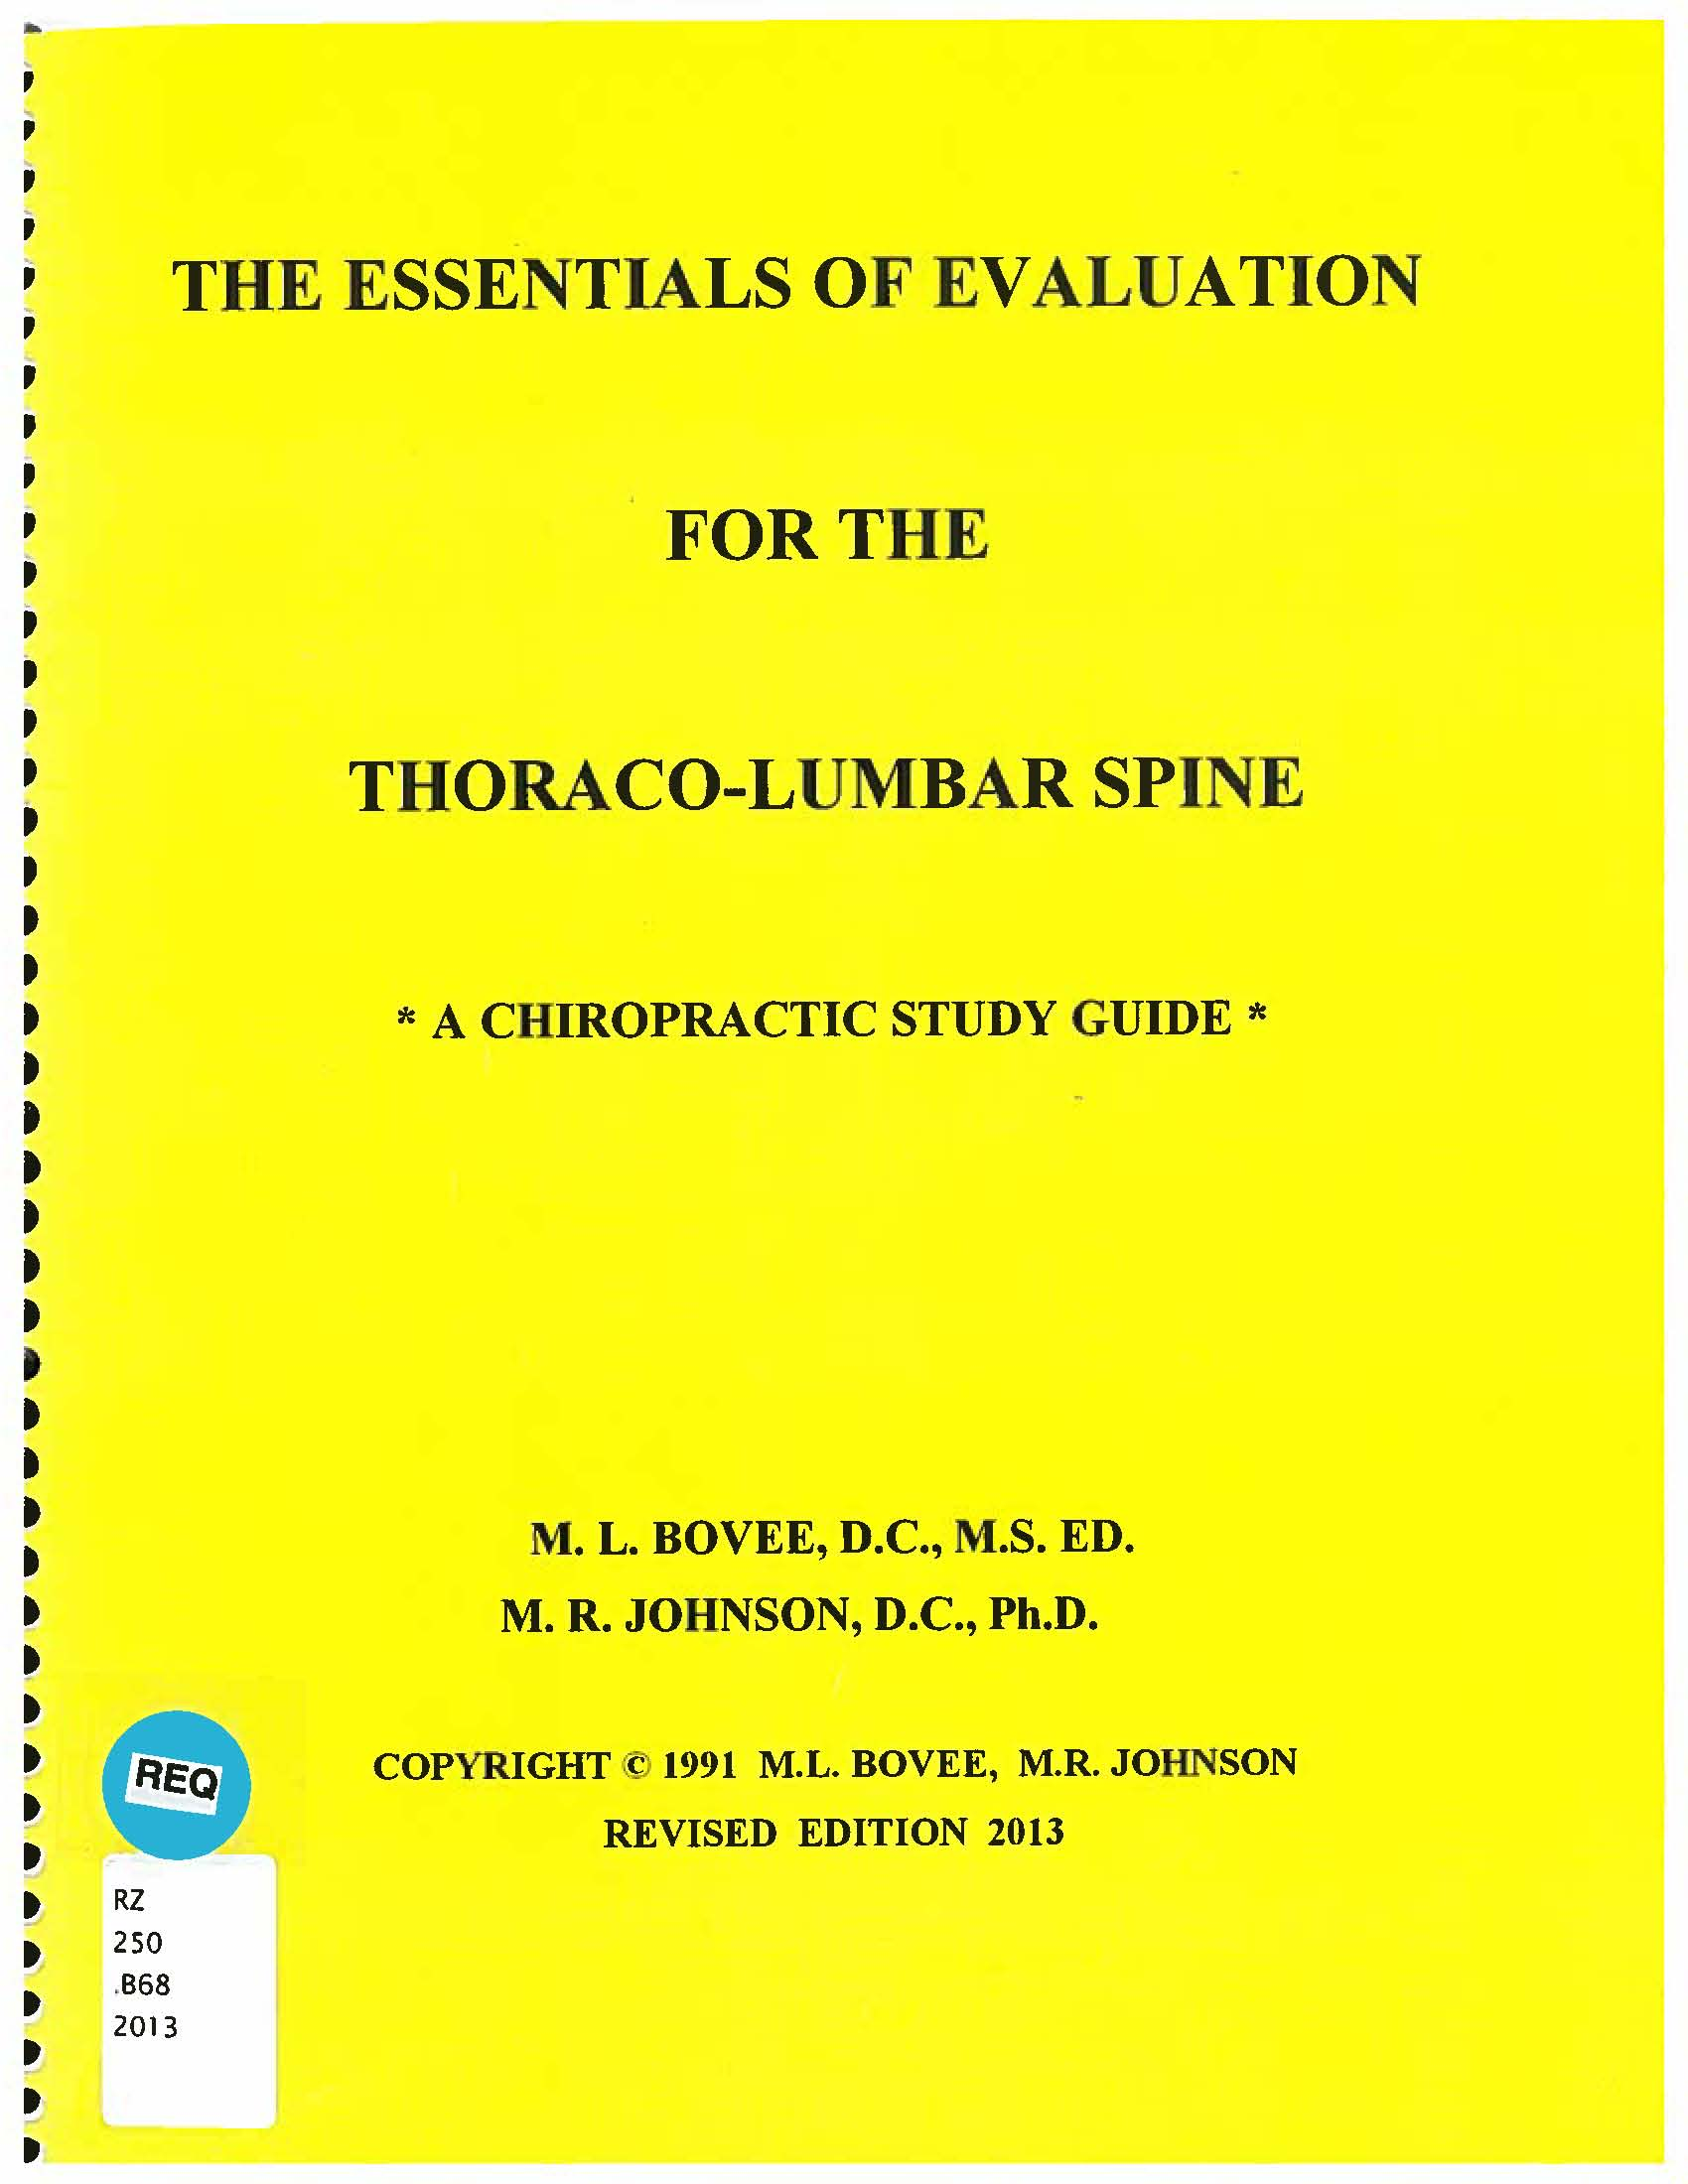 Essentials of evaluation for the thoracolumbar spine : a chiropractic study guide